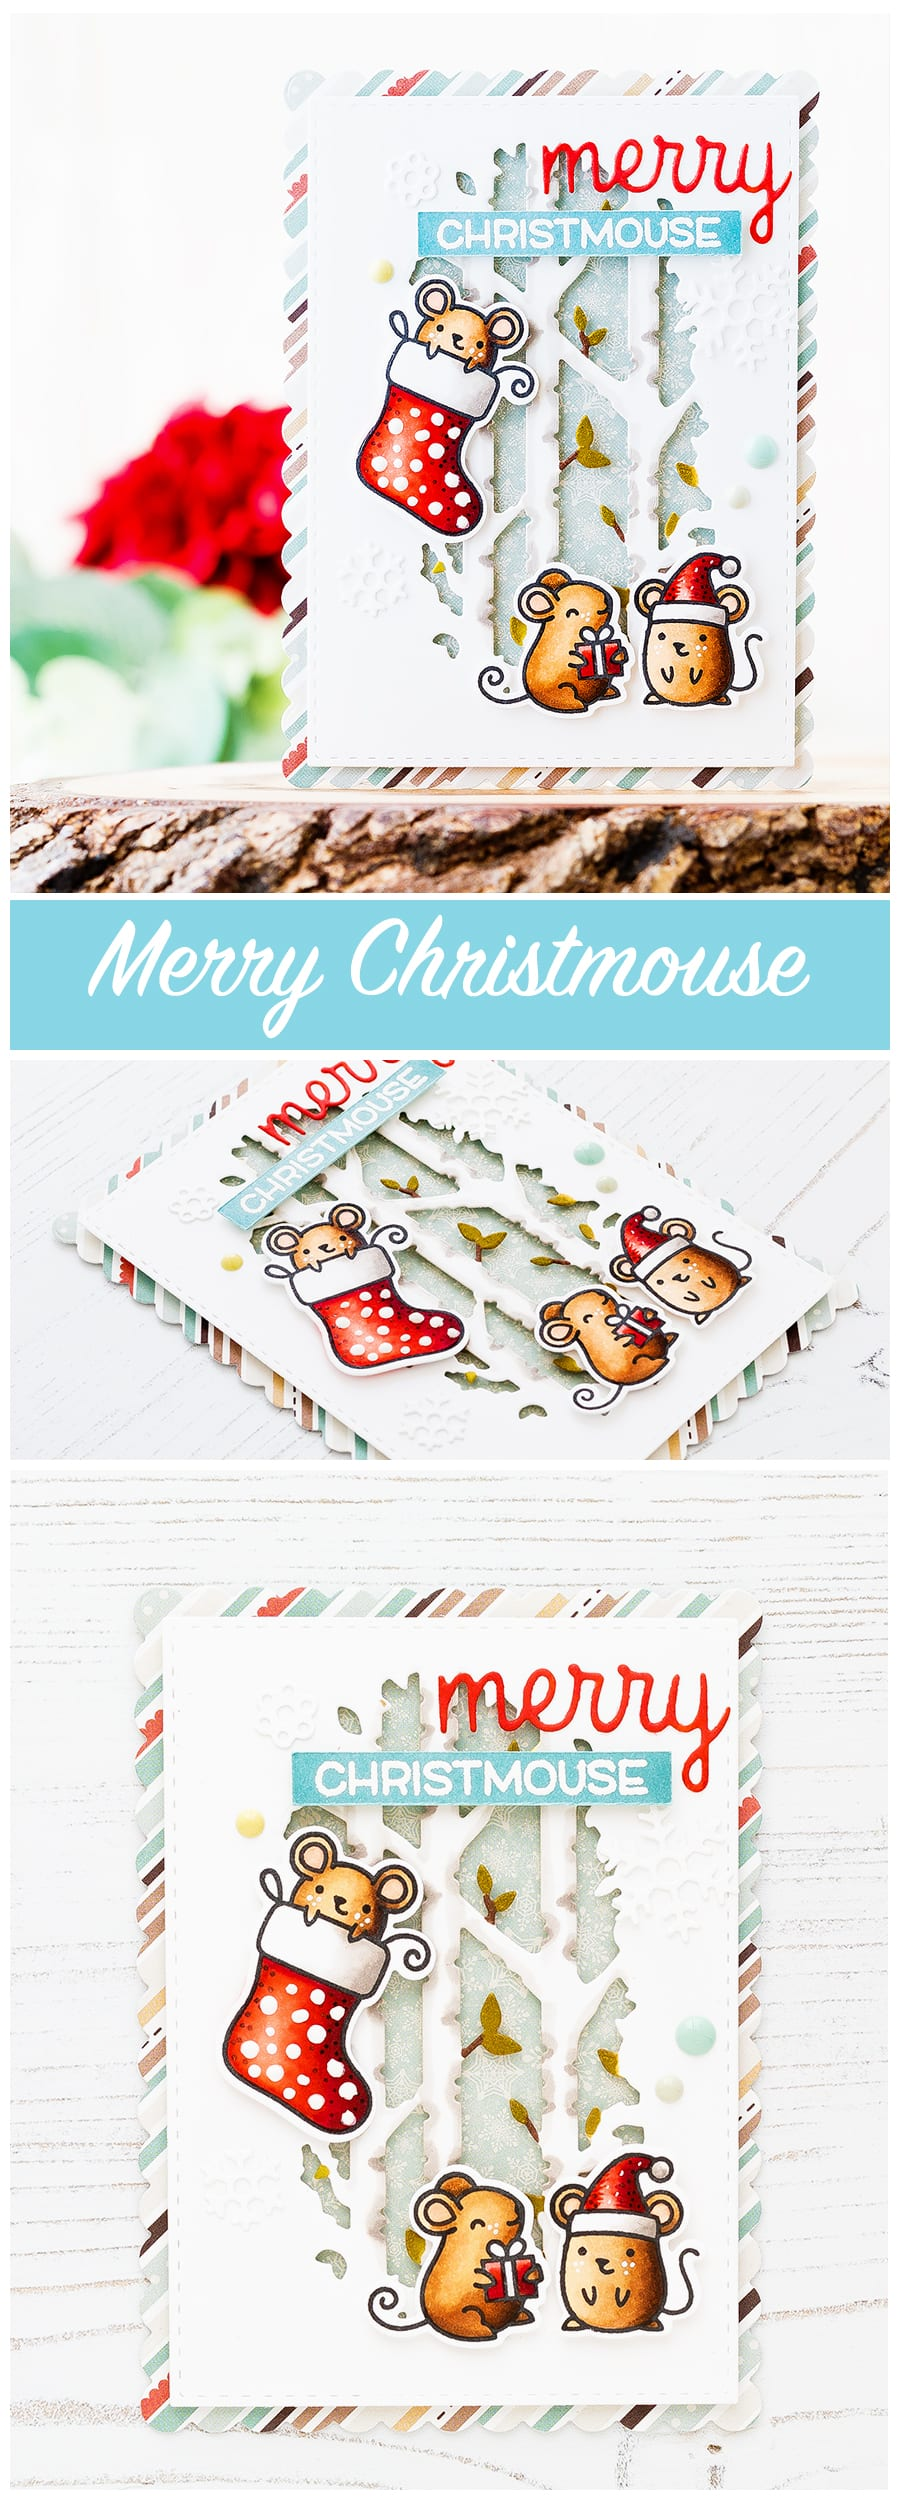 The adorable Merry Christmouse collaborative set between Lawn Fawn and Simon Says Stamp has been brought back from the vault! Find out more about this Christmas card by clicking on the following link: https://limedoodledesign.com/2016/11/merry-christmouse-from-the-vault/